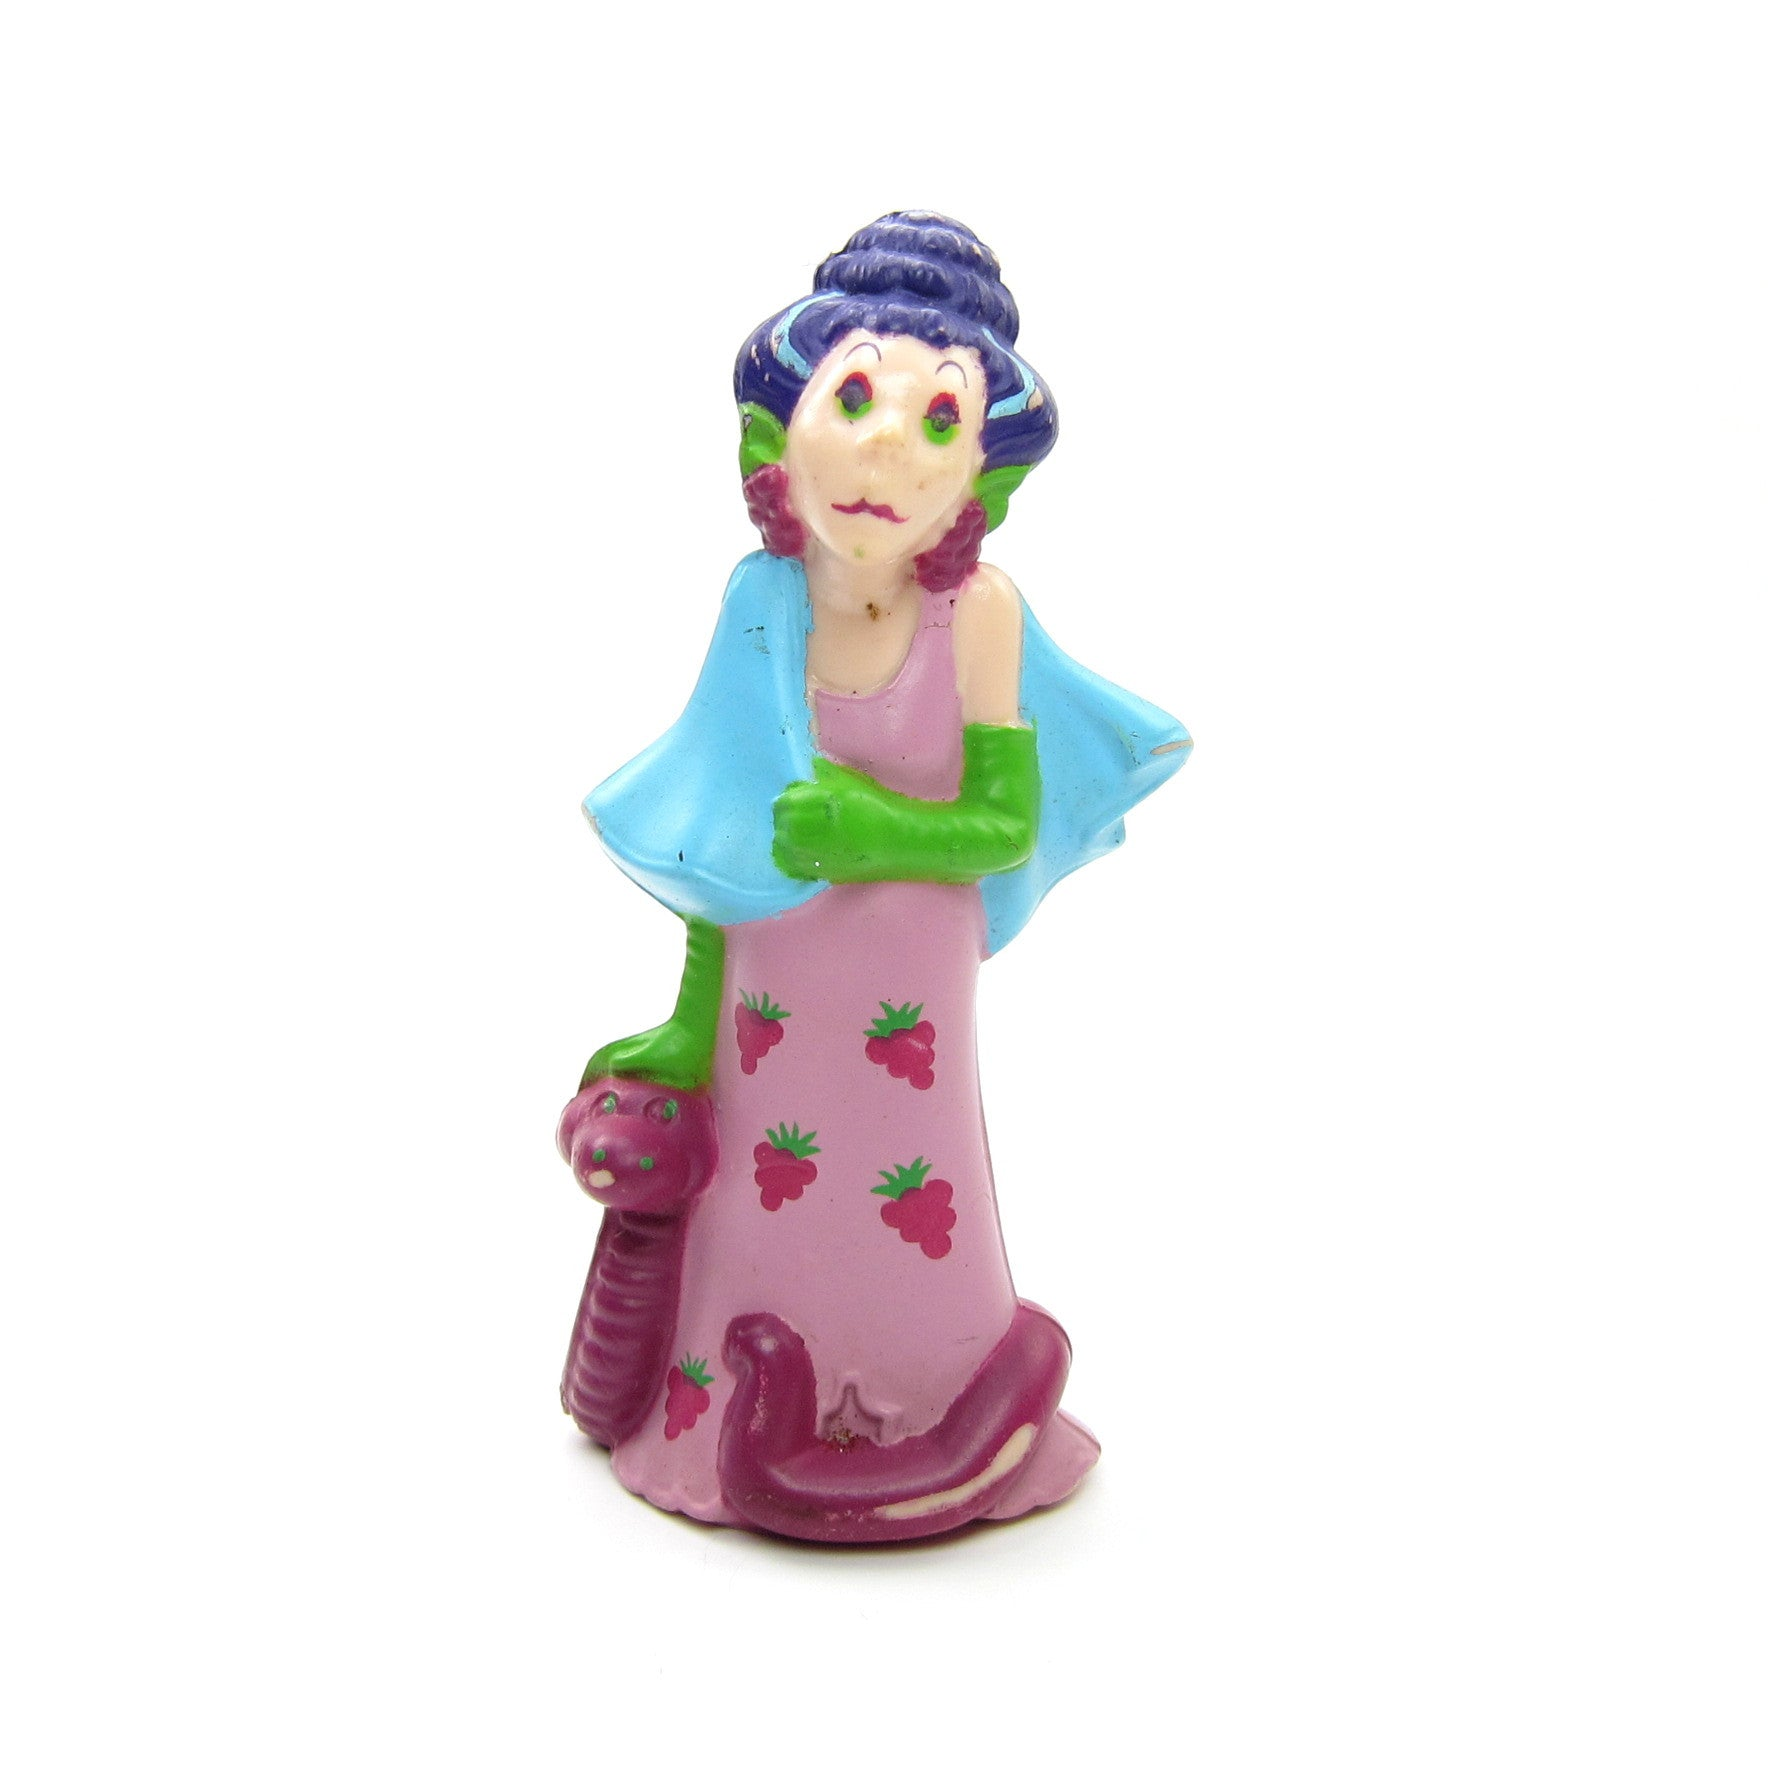 Sour Grapes with Dregs PVC miniature figurine